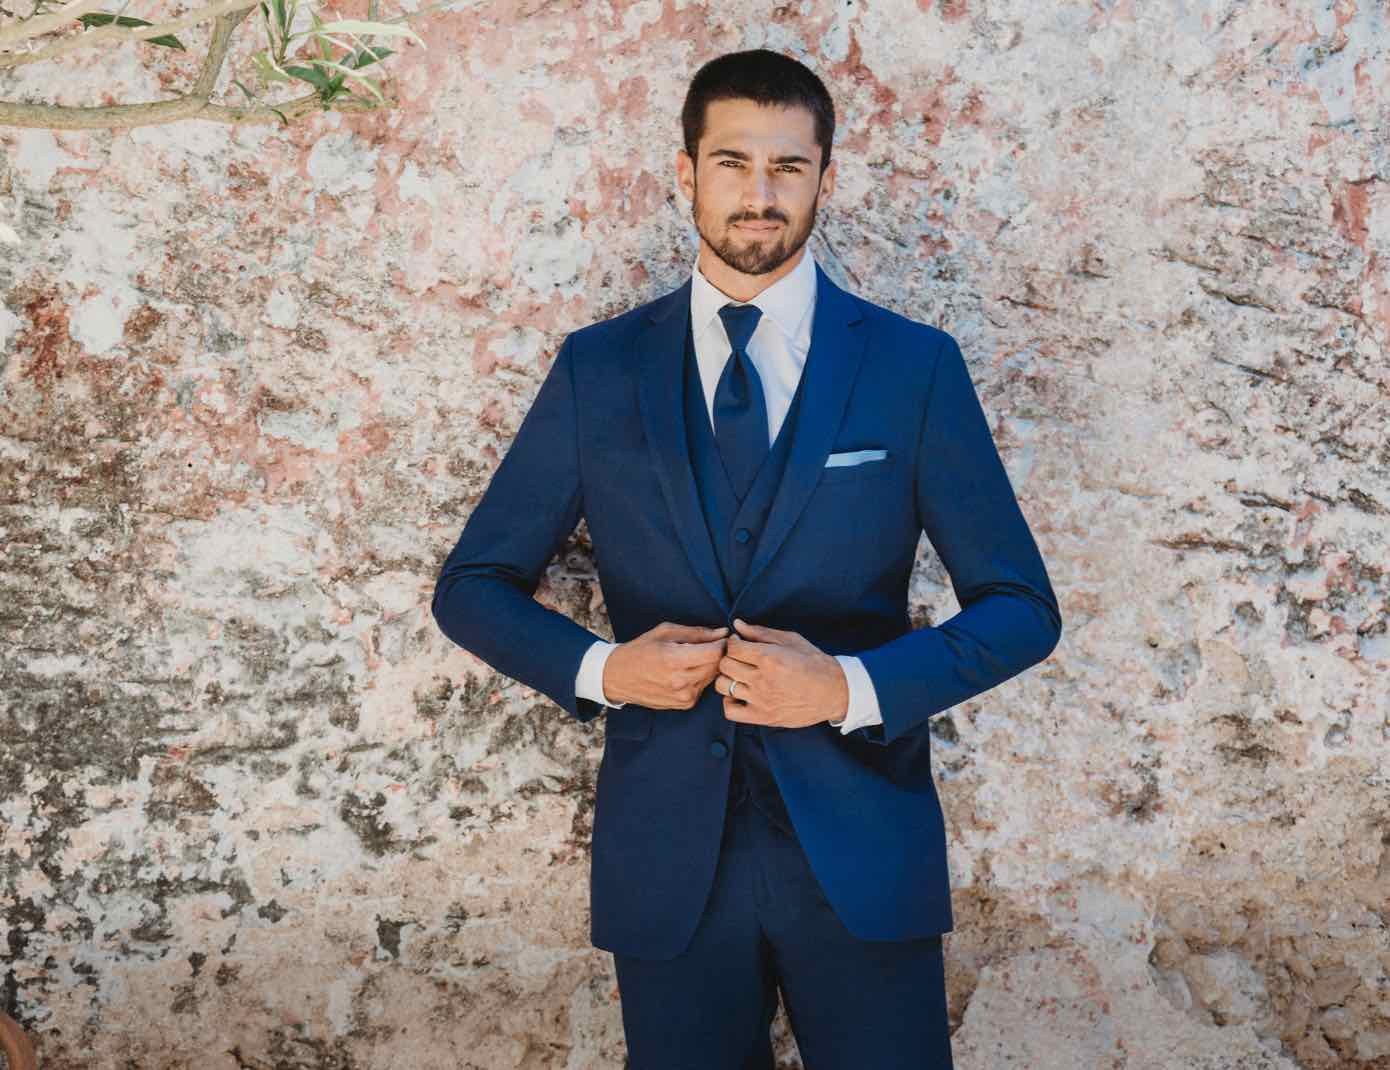 Male model wearing a dark blue tuxedo